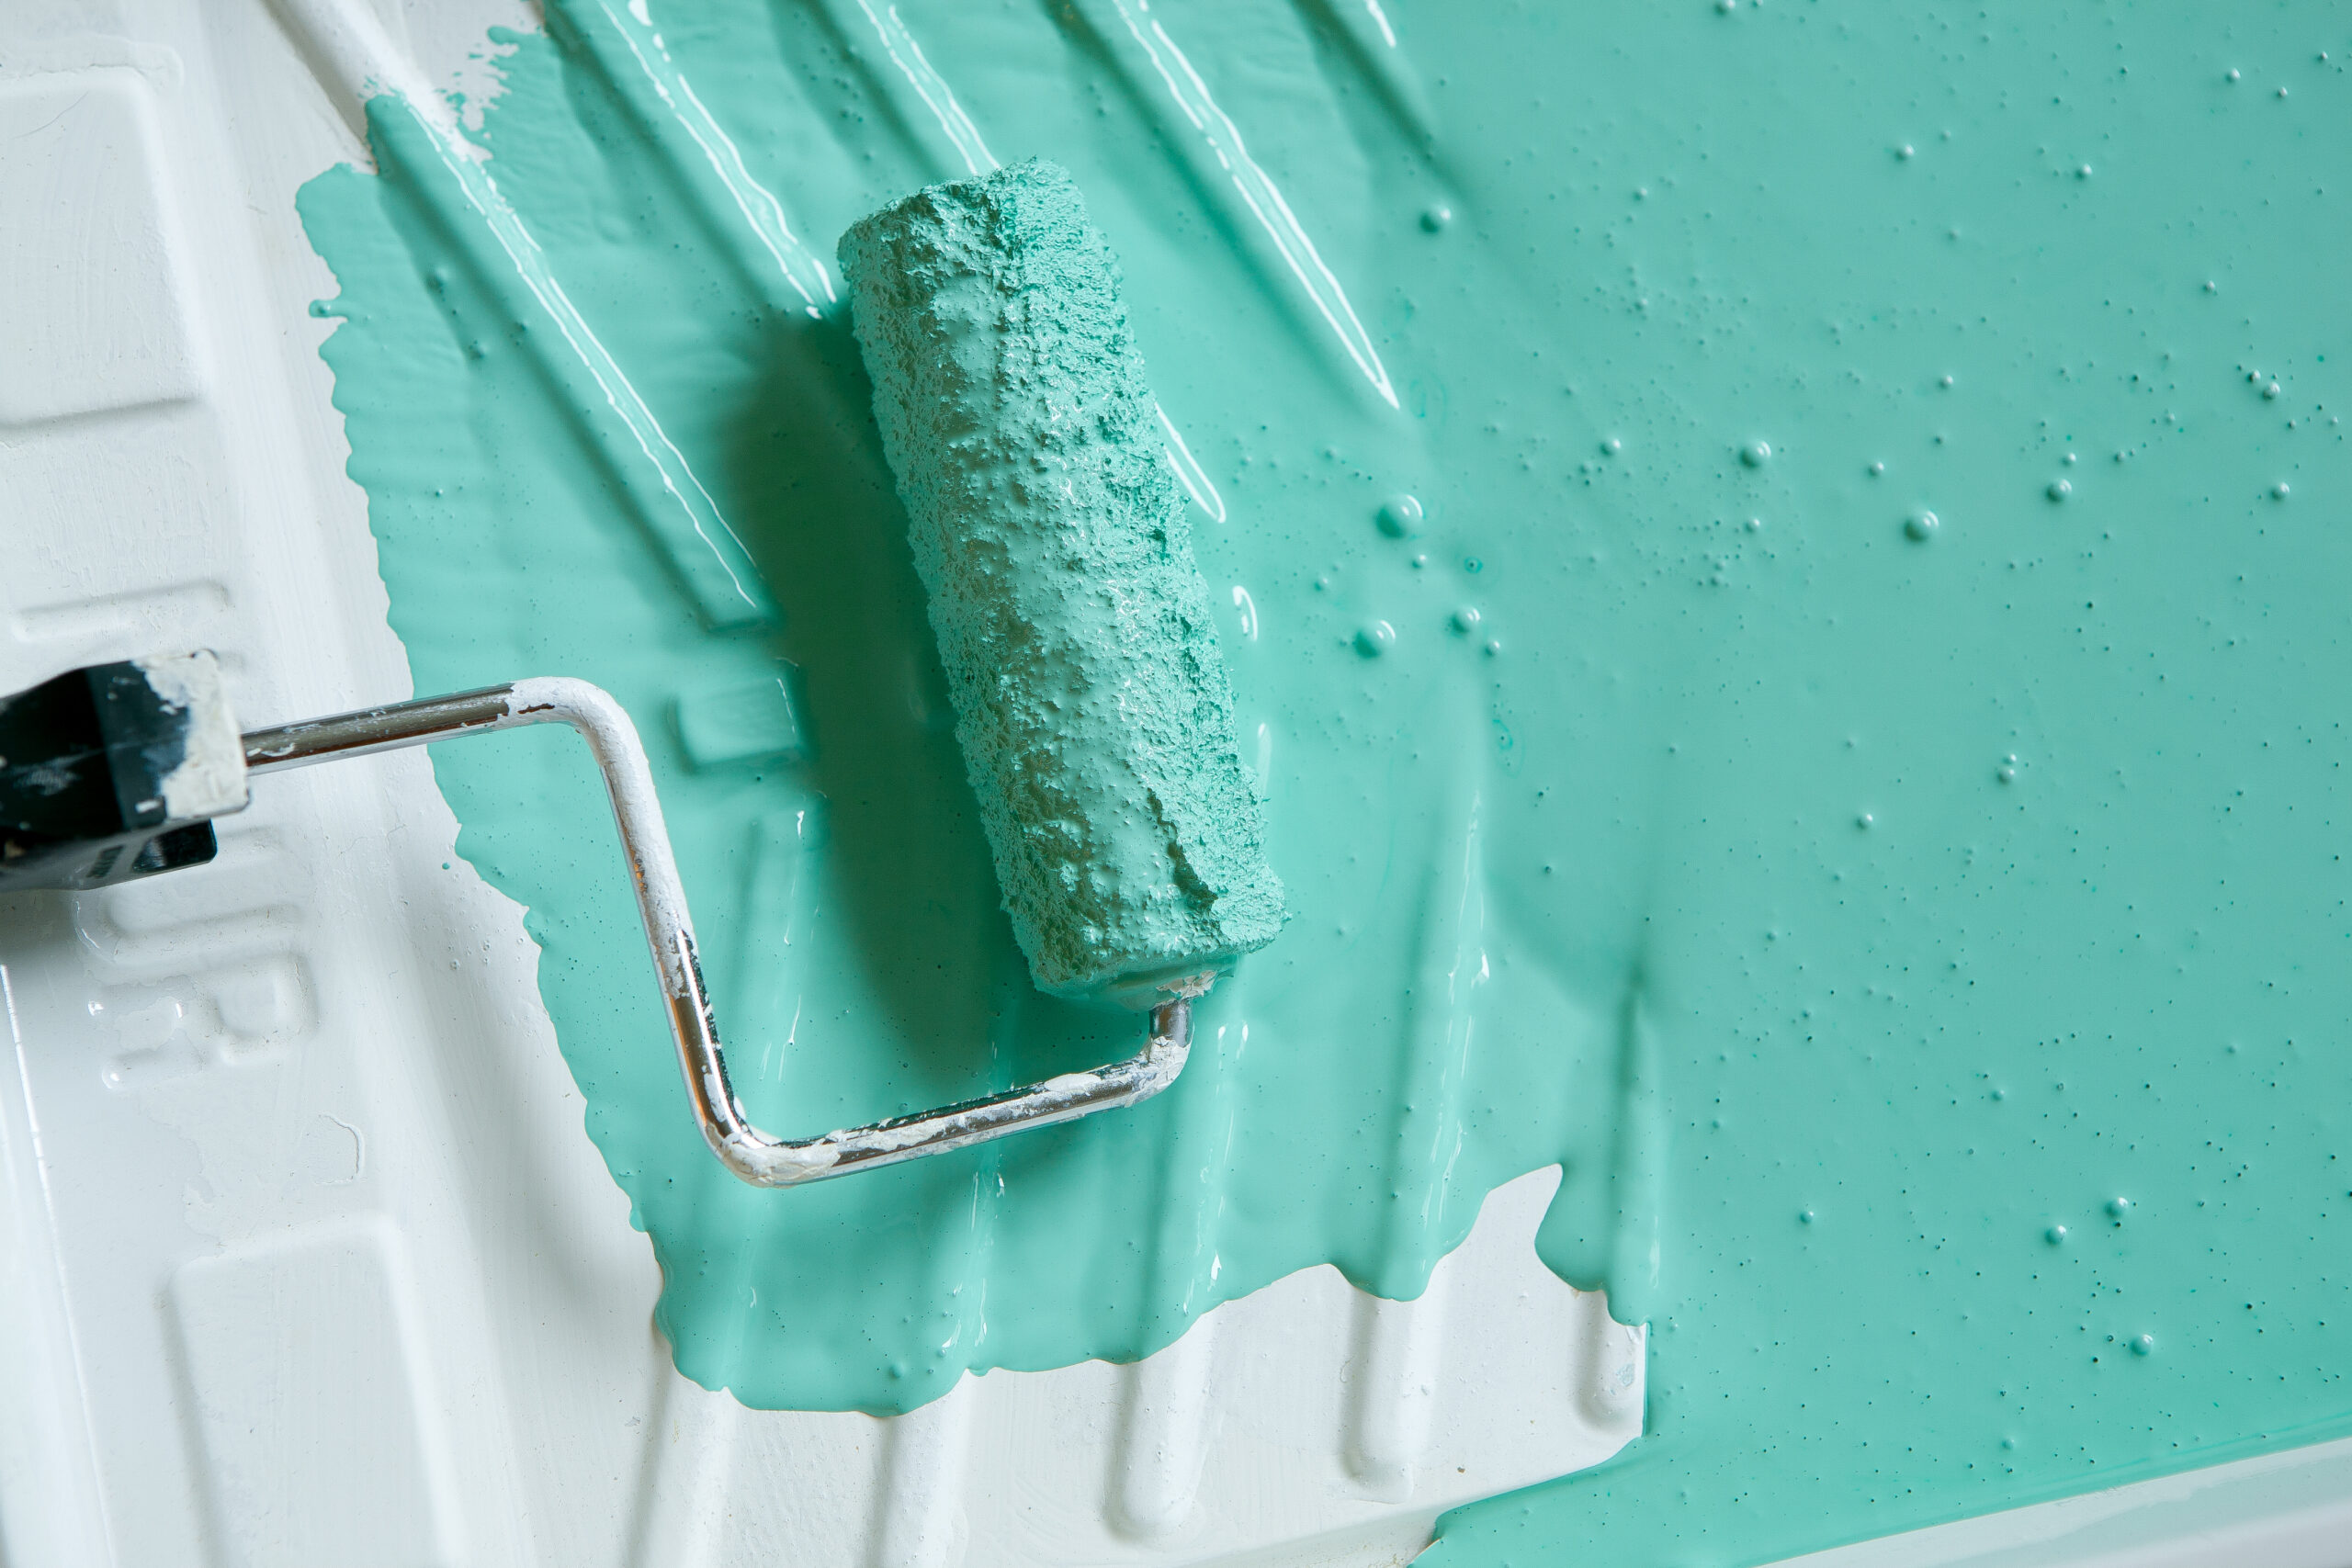 Paint roller in tray